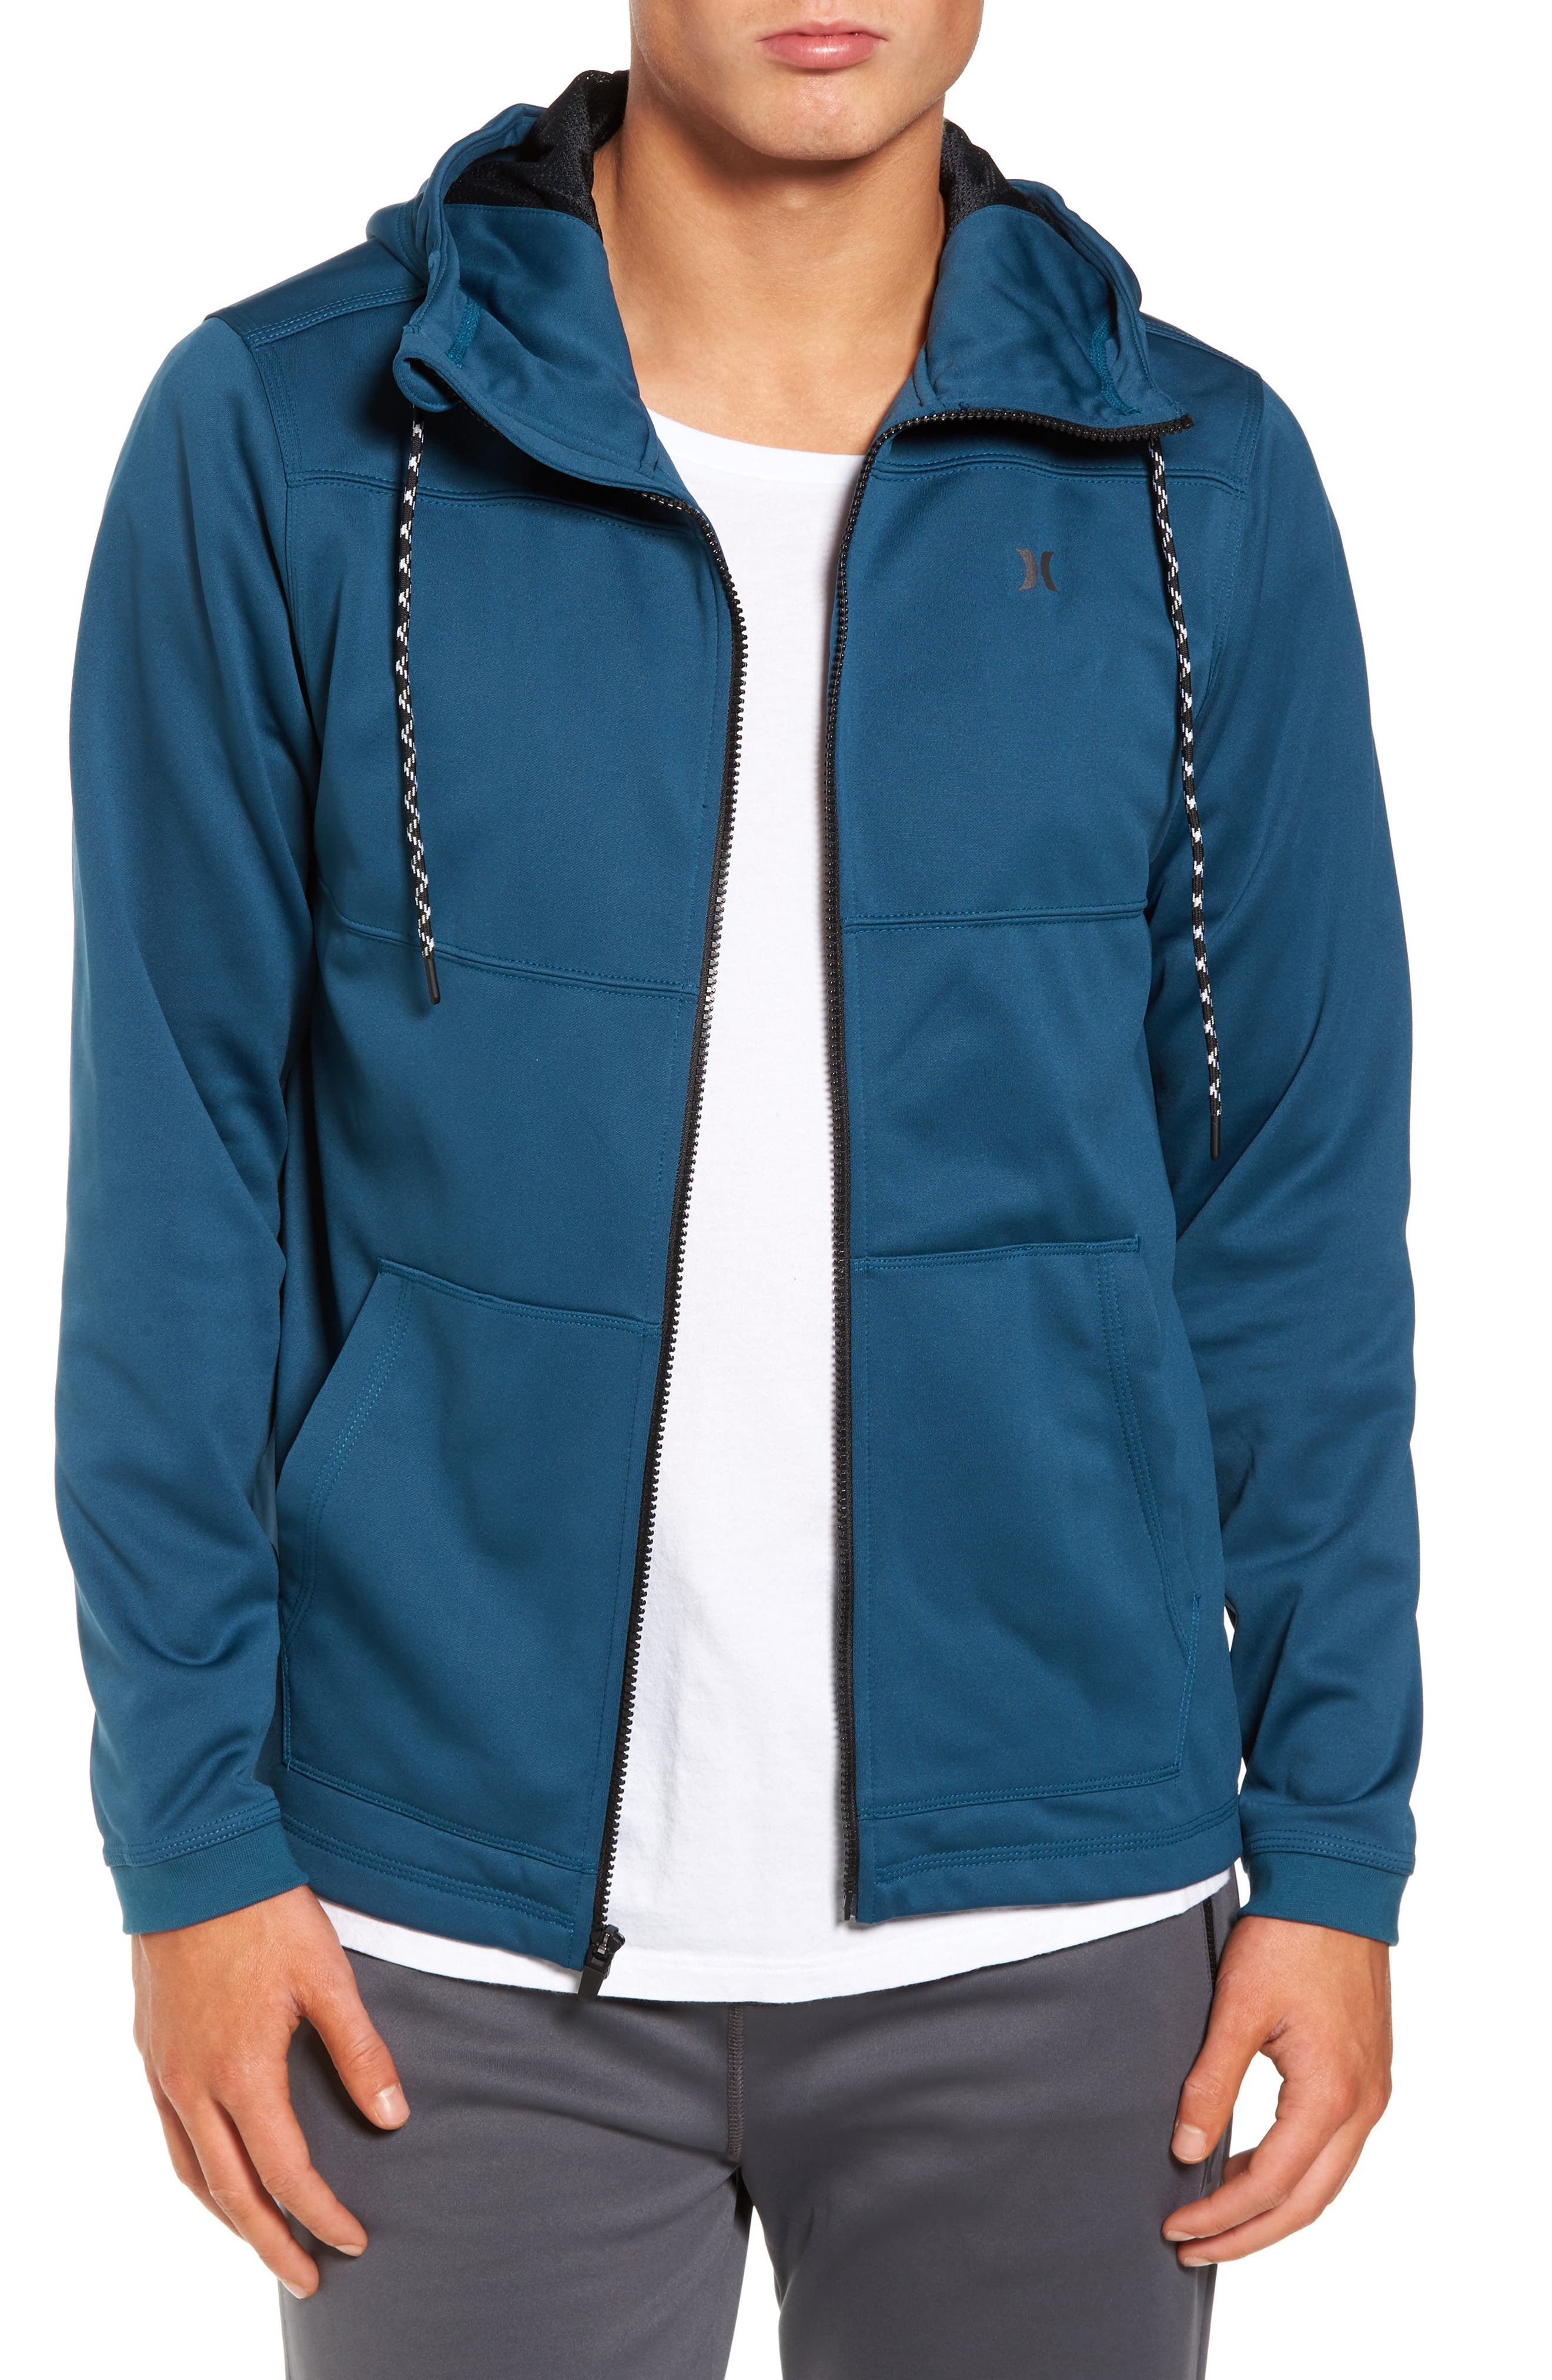 Therma Protect Zip Hoodie,                             Main thumbnail 1, color,                             Space Blue